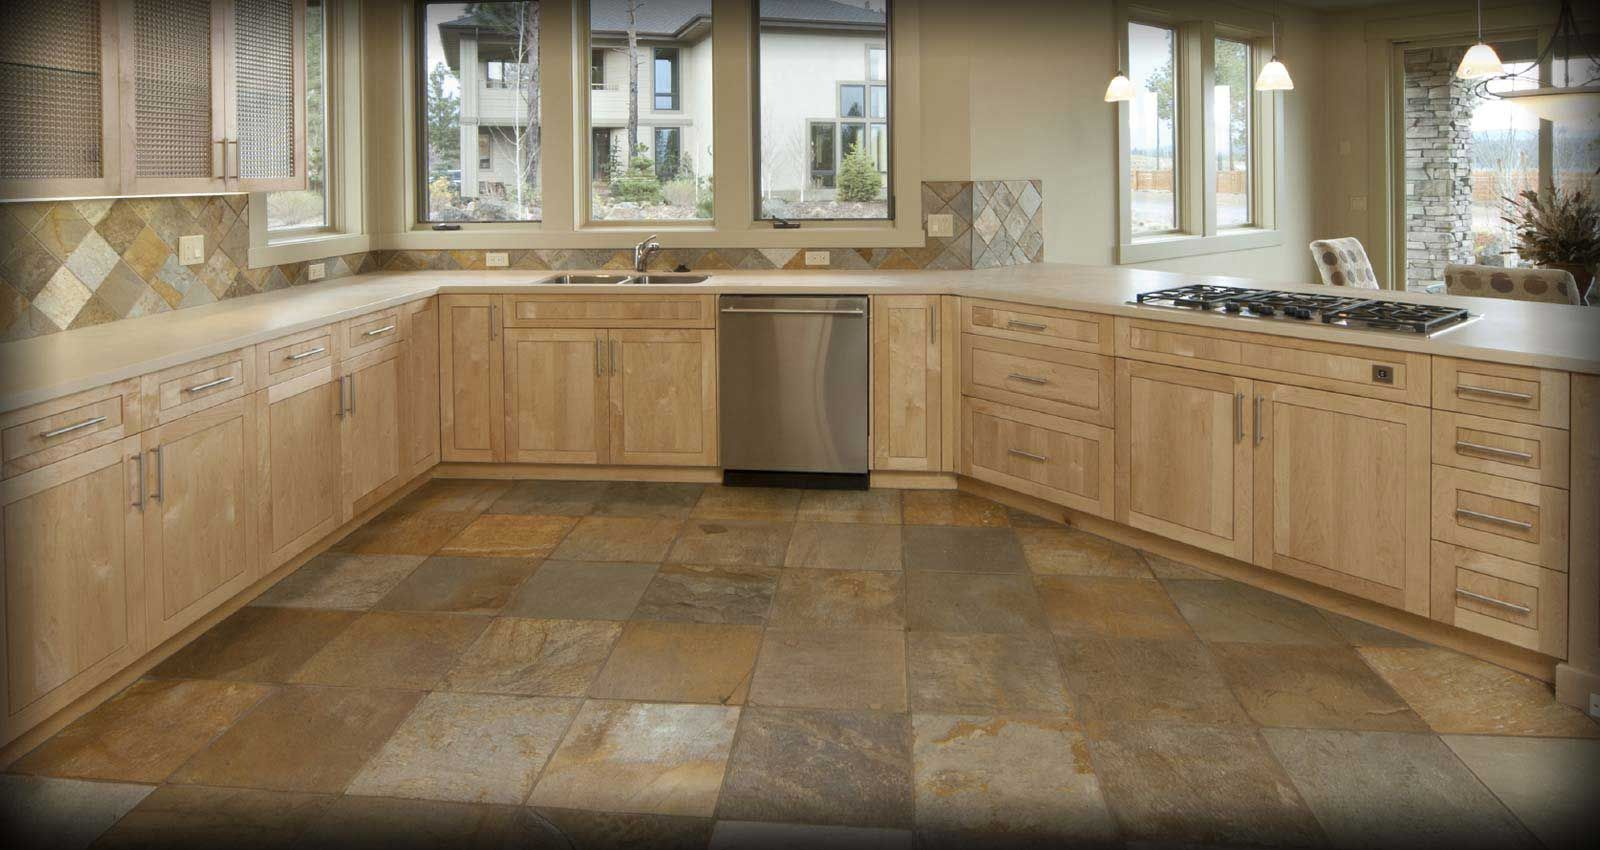 Stone Floor Tiles Kitchen Kitchen Floor Ideas Full Size Of Tile Pattern Ideas For Kitchen